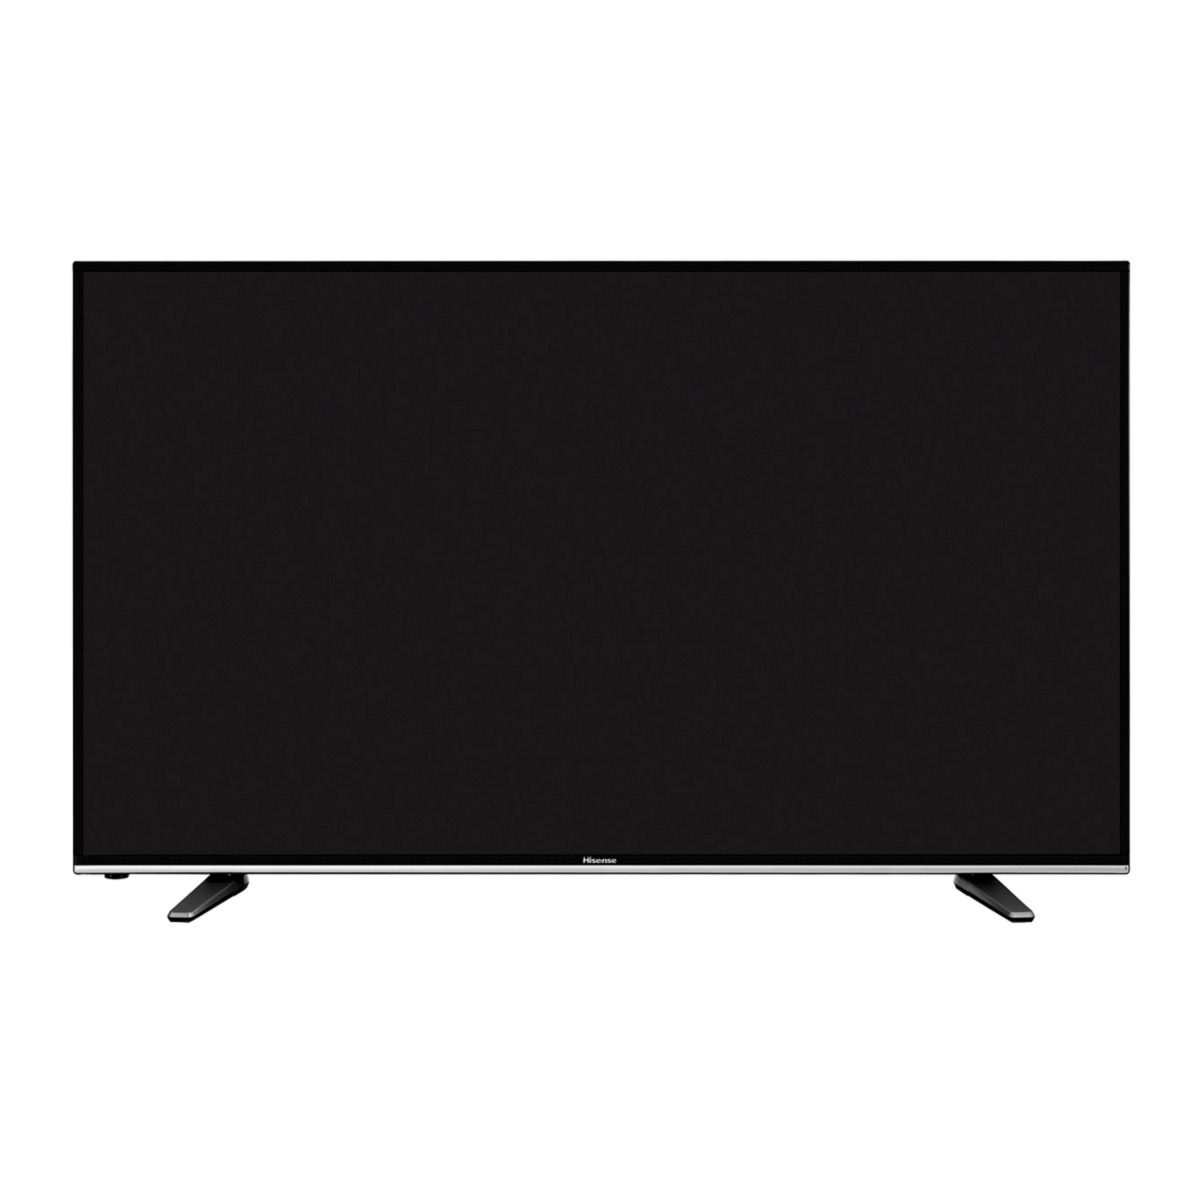 Panasonic TV TH-55CS650A